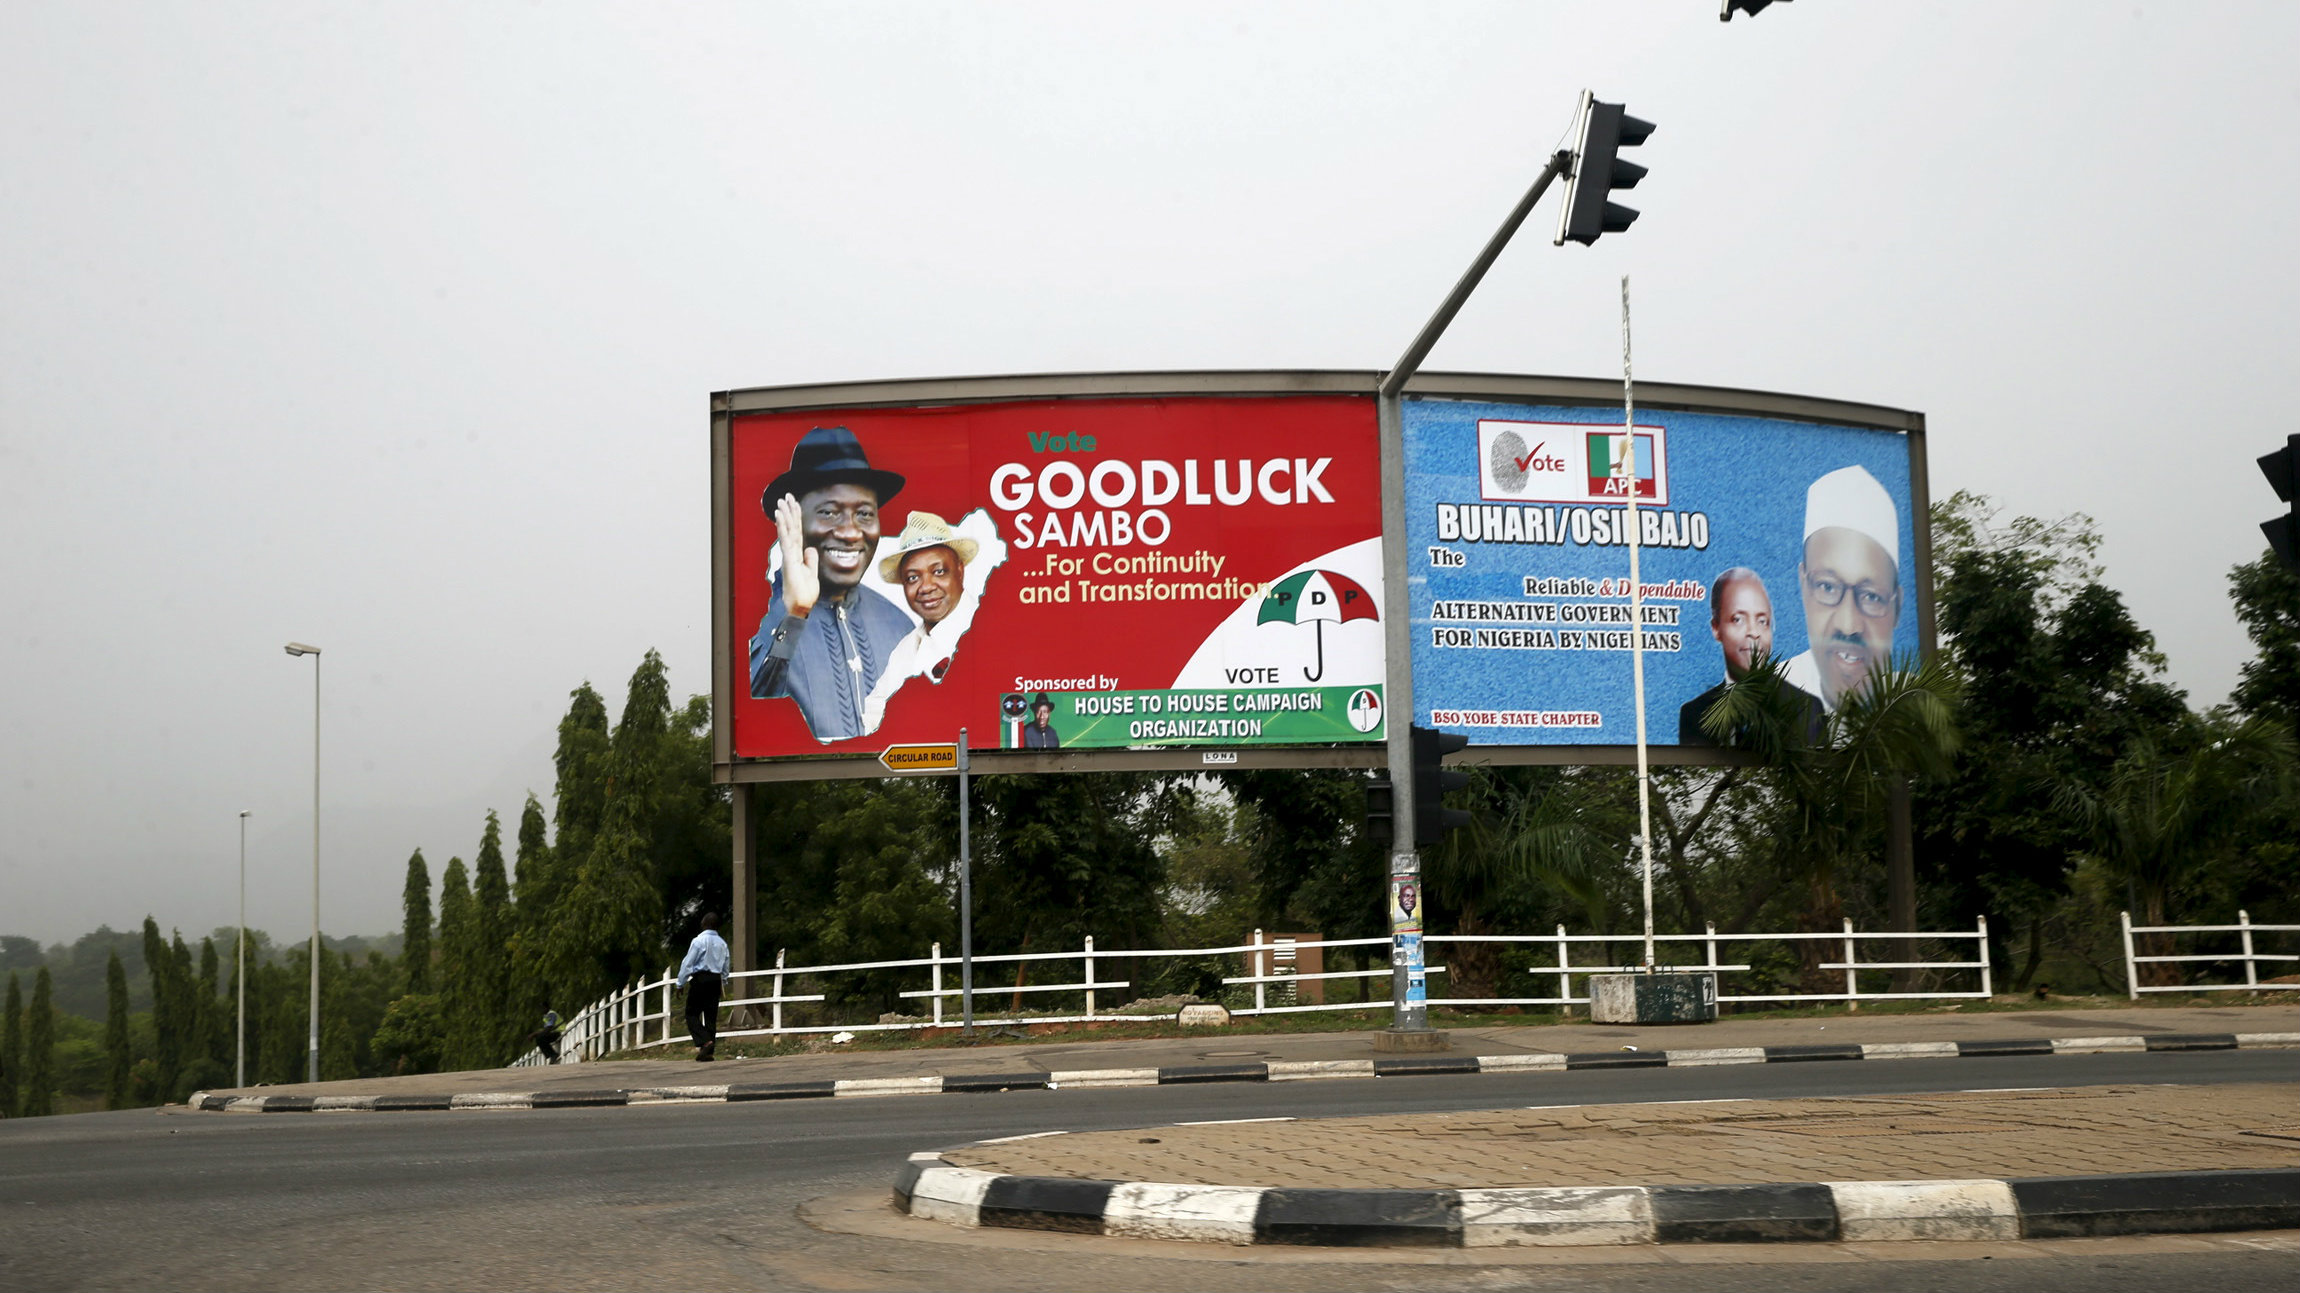 A billboard advertising for the re-election President Goodluck Jonathan is seen standing next to another one campaigning for President-elect Muhammadu Buhari in the capital Abuja April 1, 2015. As Muhammadu Buhari closed in on Nigeria's presidency, an aide to election commission chairman Attahiru Jega sent a text message to an independent voting monitor, warning of an imminent threat to the electoral process. The aide had unearthed a plot by supporters of President Goodluck Jonathan to disrupt the public announcement of the national election results and kidnap Jega in a bid to wreck the count, according to pro-democracy advocates and a Nigeria-based diplomat. Picture taken April 1, 2015.